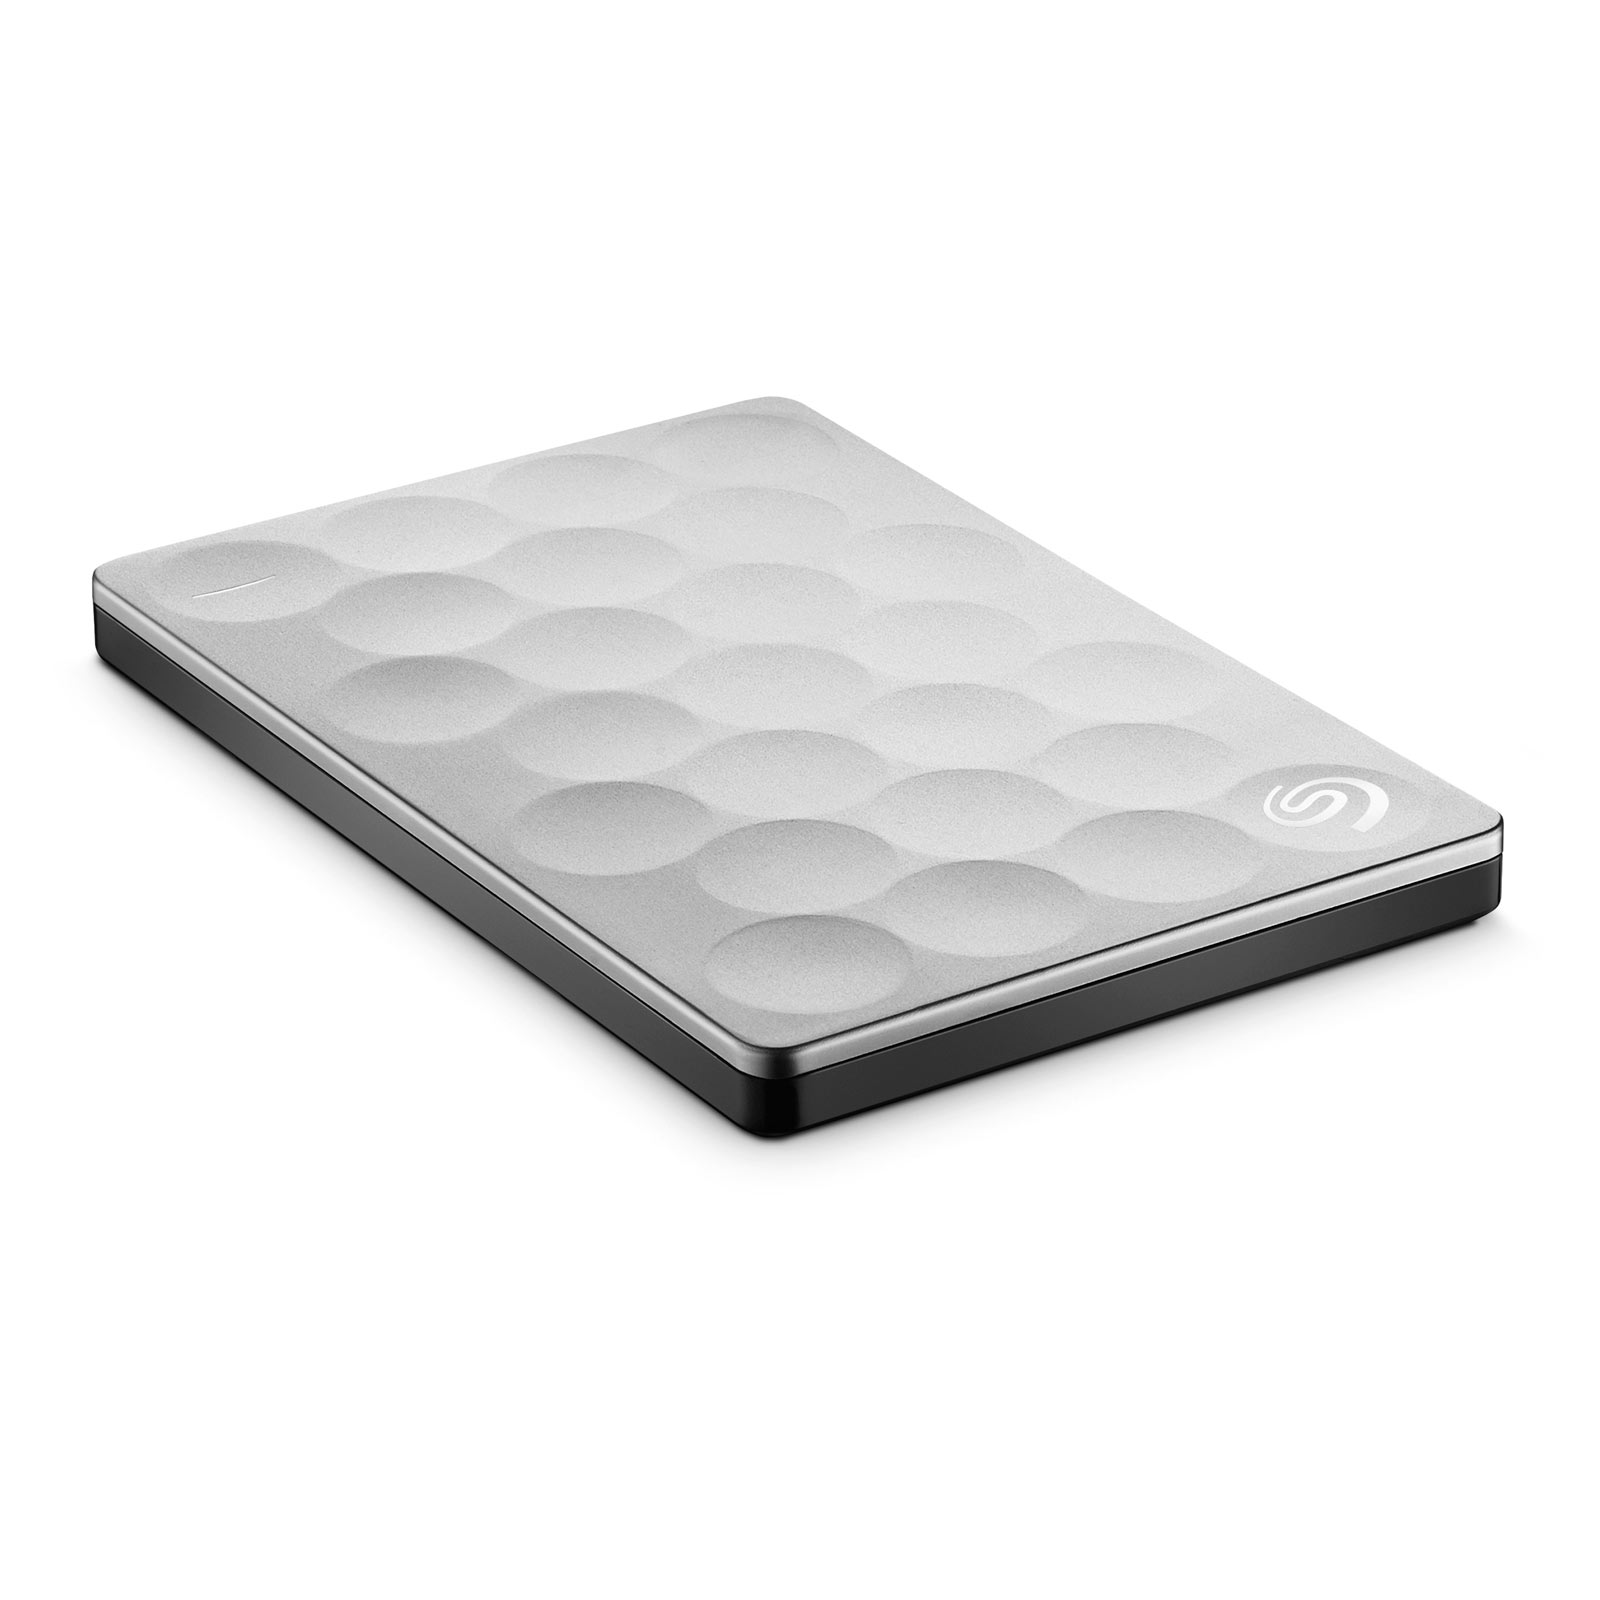 Seagate 2To Backup Plus Ultra Slim platine - Disque dur externe - 2